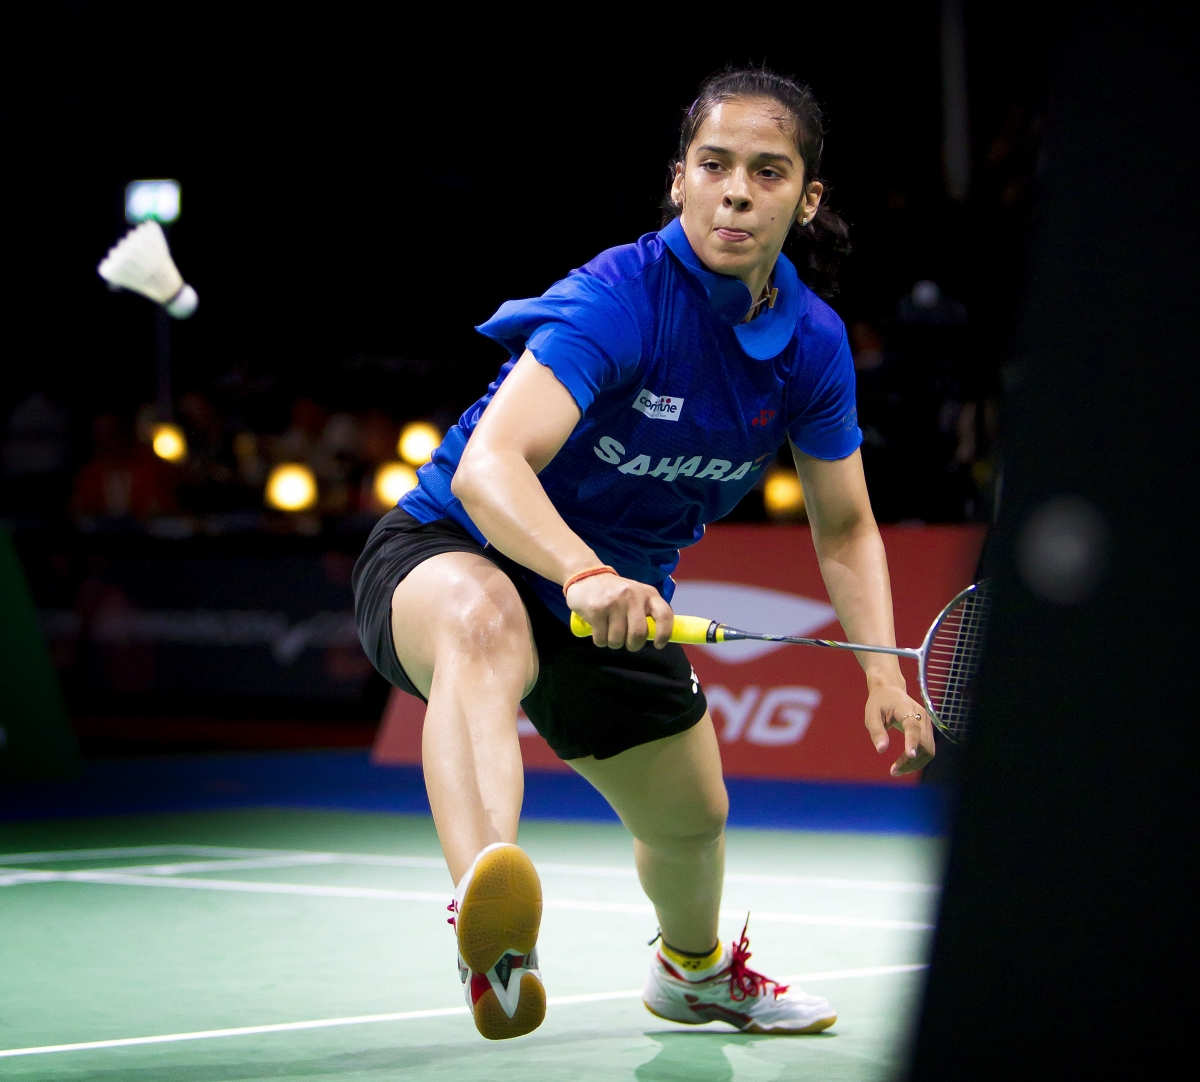 information on saina nehwal